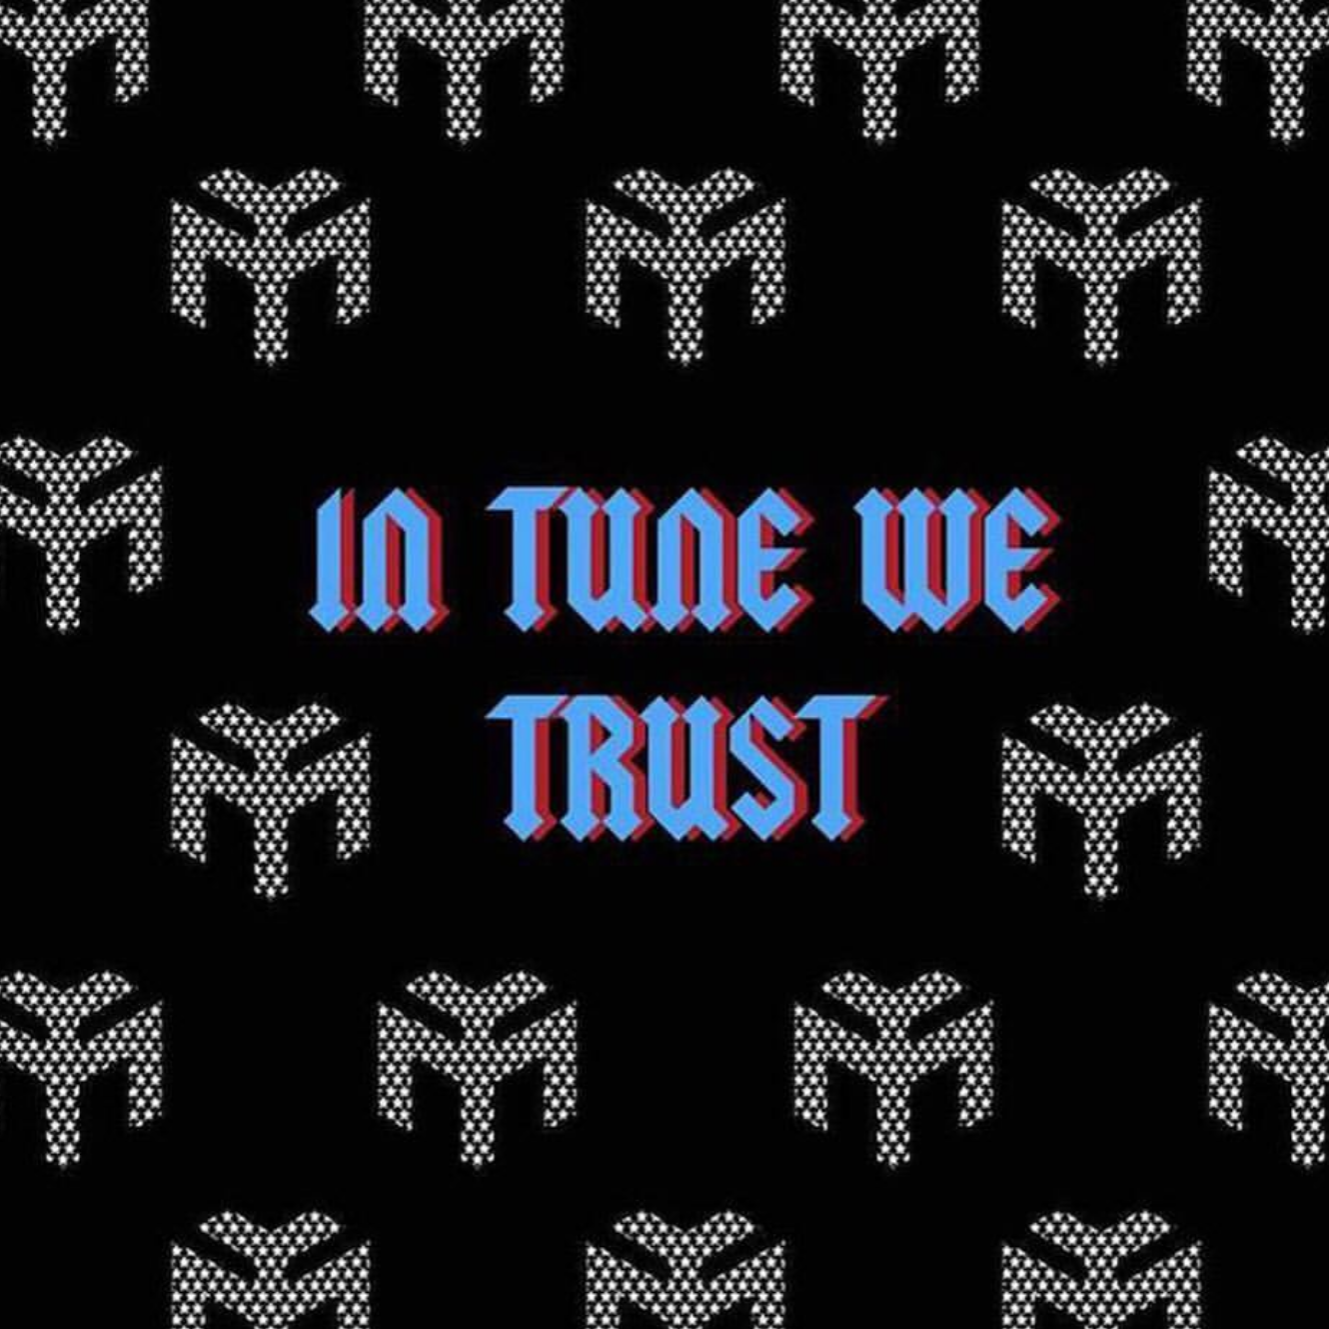 Lil Wayne - In Tune We Trust Cover Art